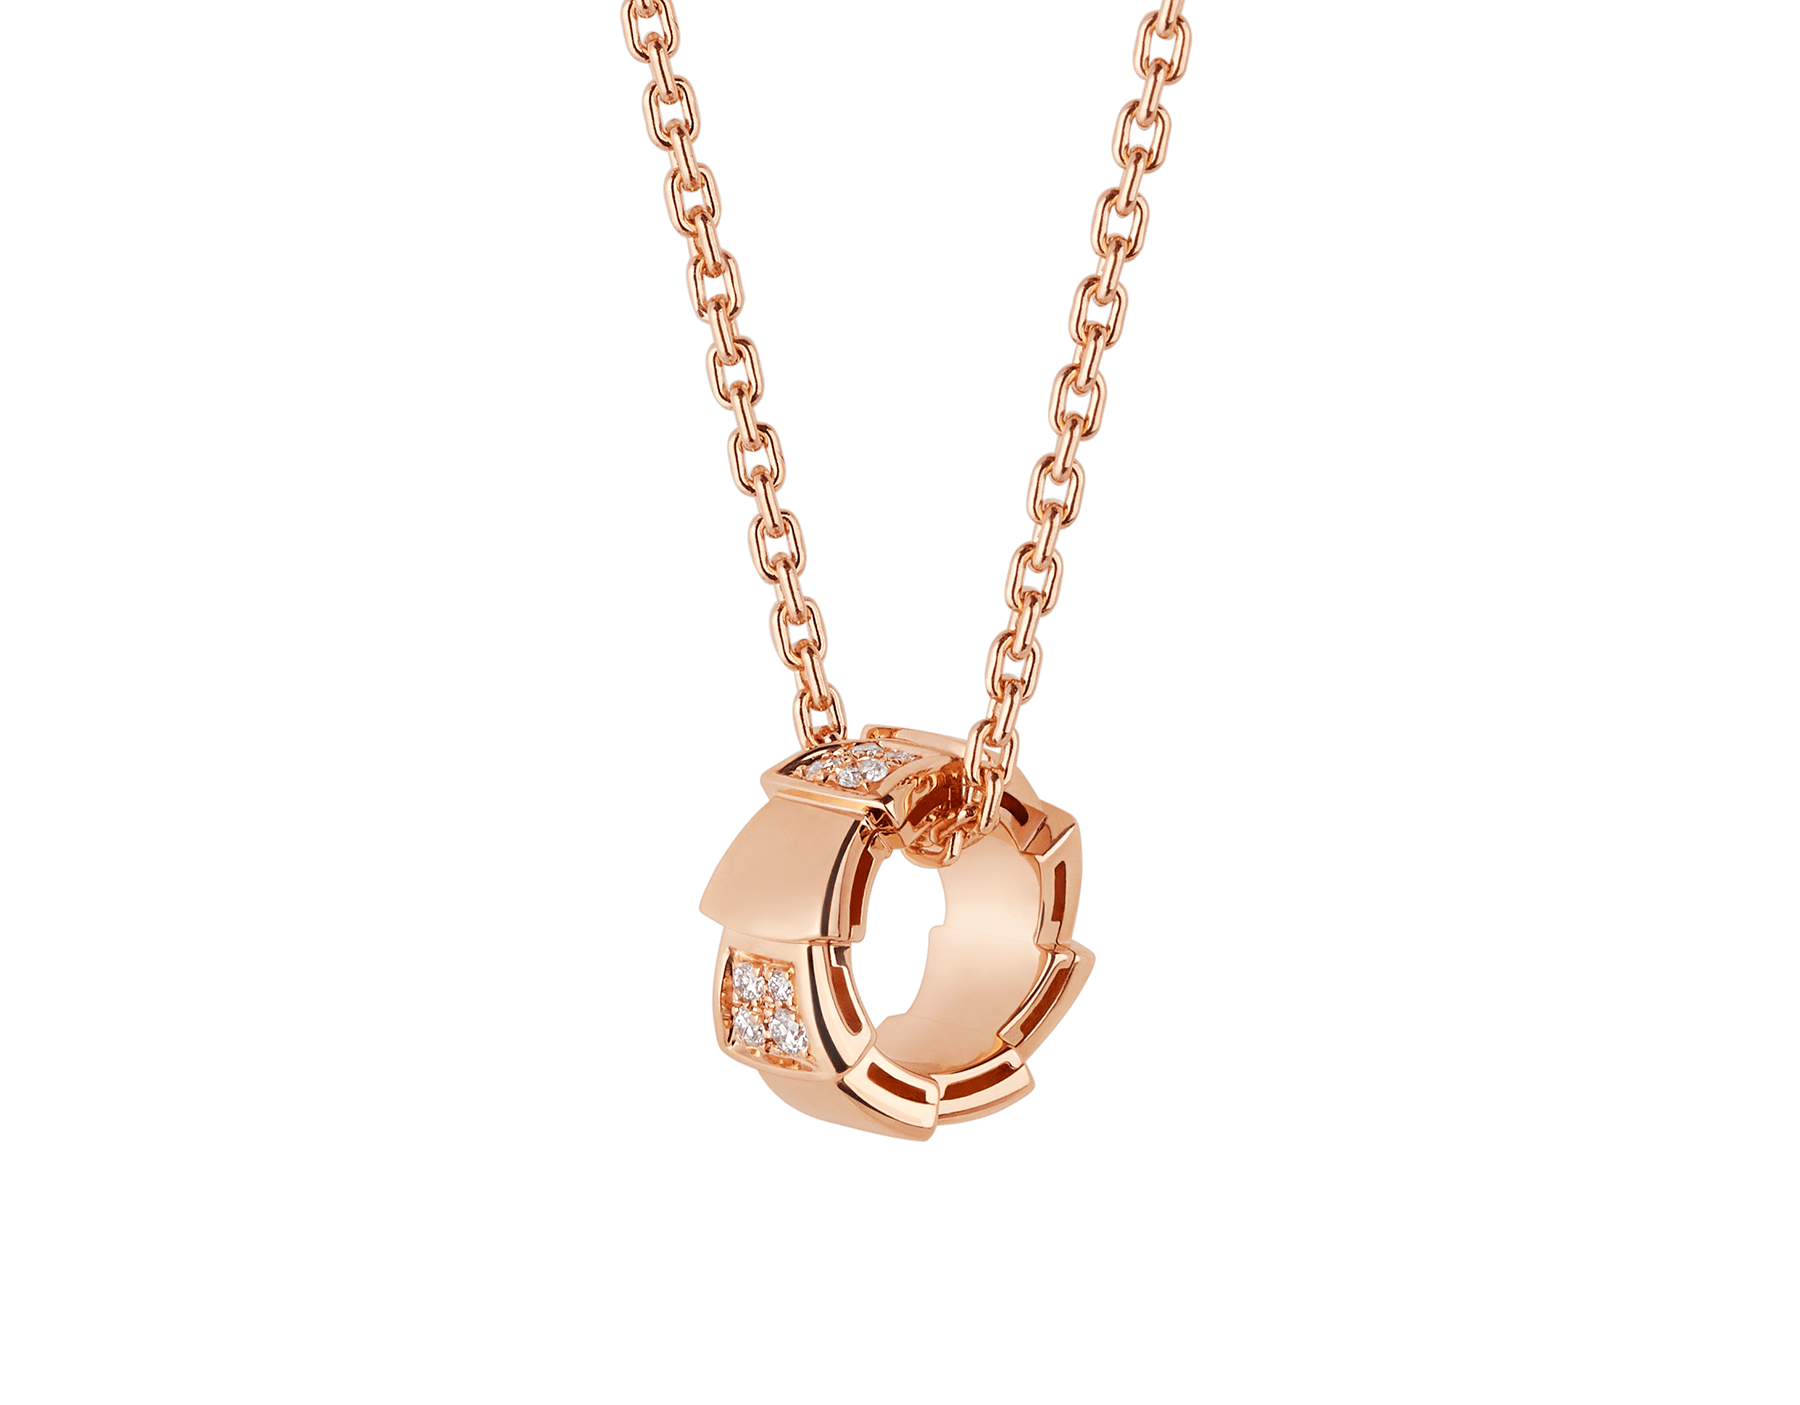 Serpenti Viper necklace with 18 kt rose gold chain and 18 kt rose gold pendant set with demi pavé diamonds. (0.21 ct) 355254 image 1